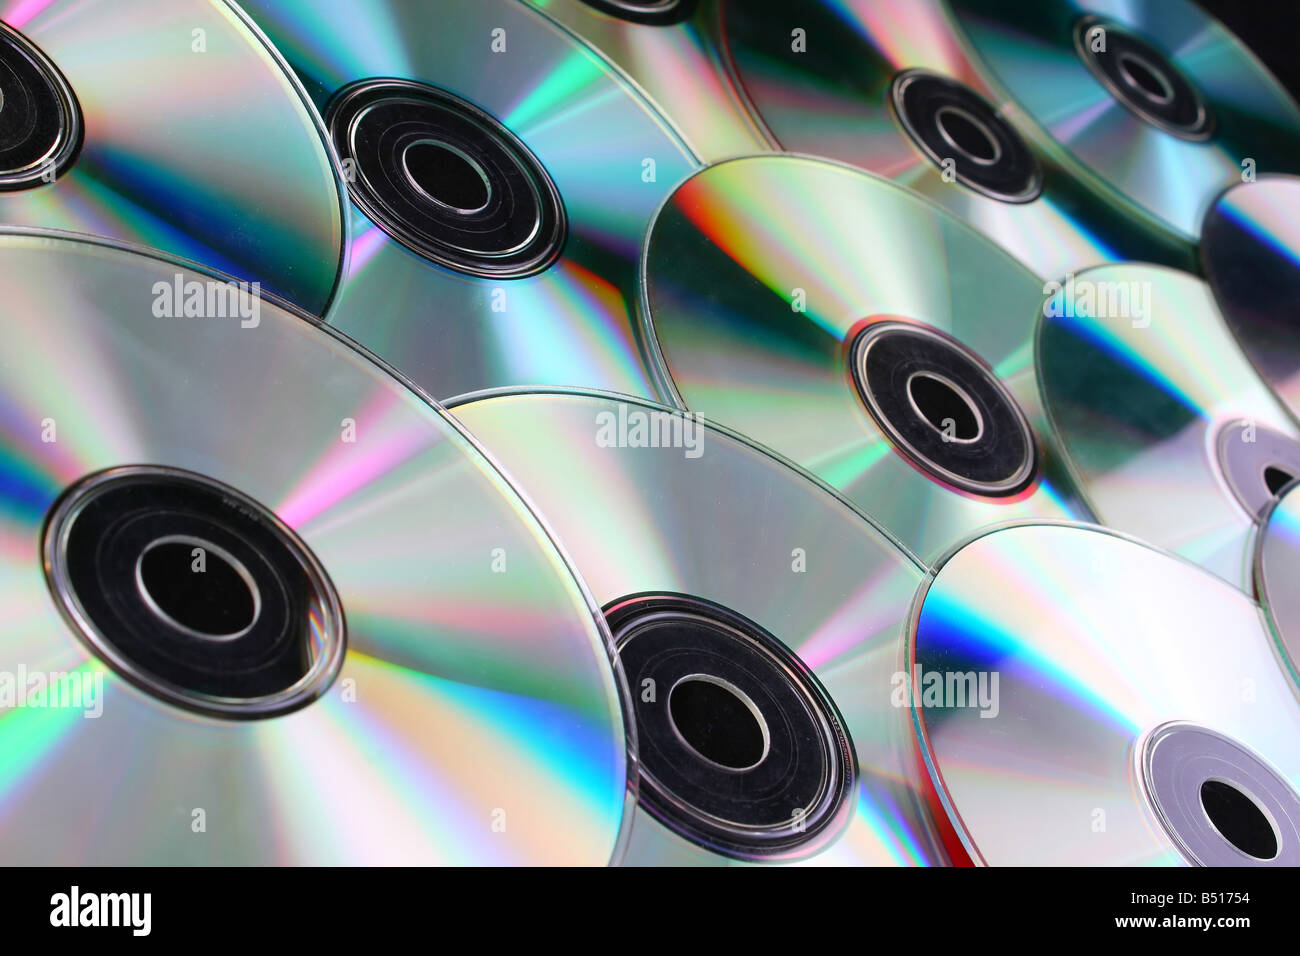 cd dvd discs over black background computers Stock Photo